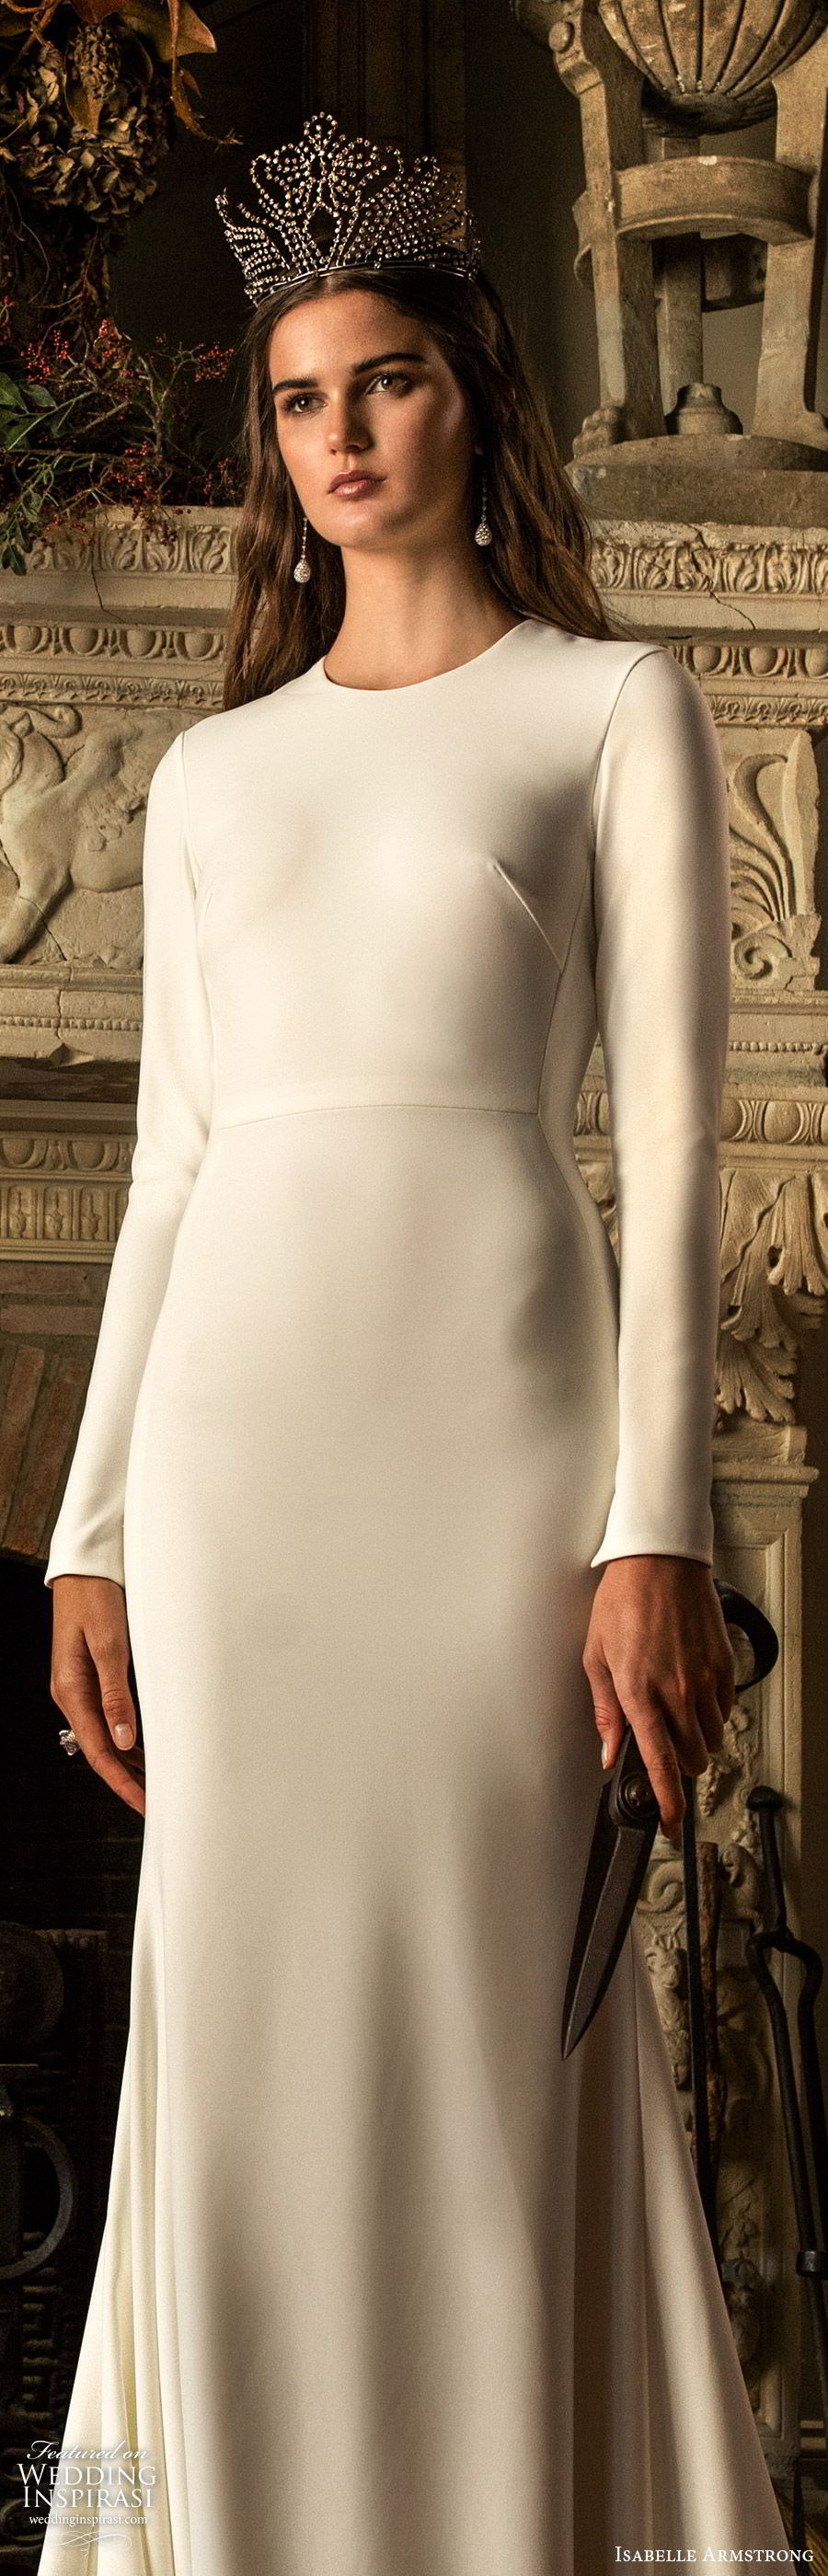 isabelle armstrong fall 2019 bridal long sleeves jewel neckline fit flare sheath wedding dress (9) elegant timeless clean simple chapel train lv